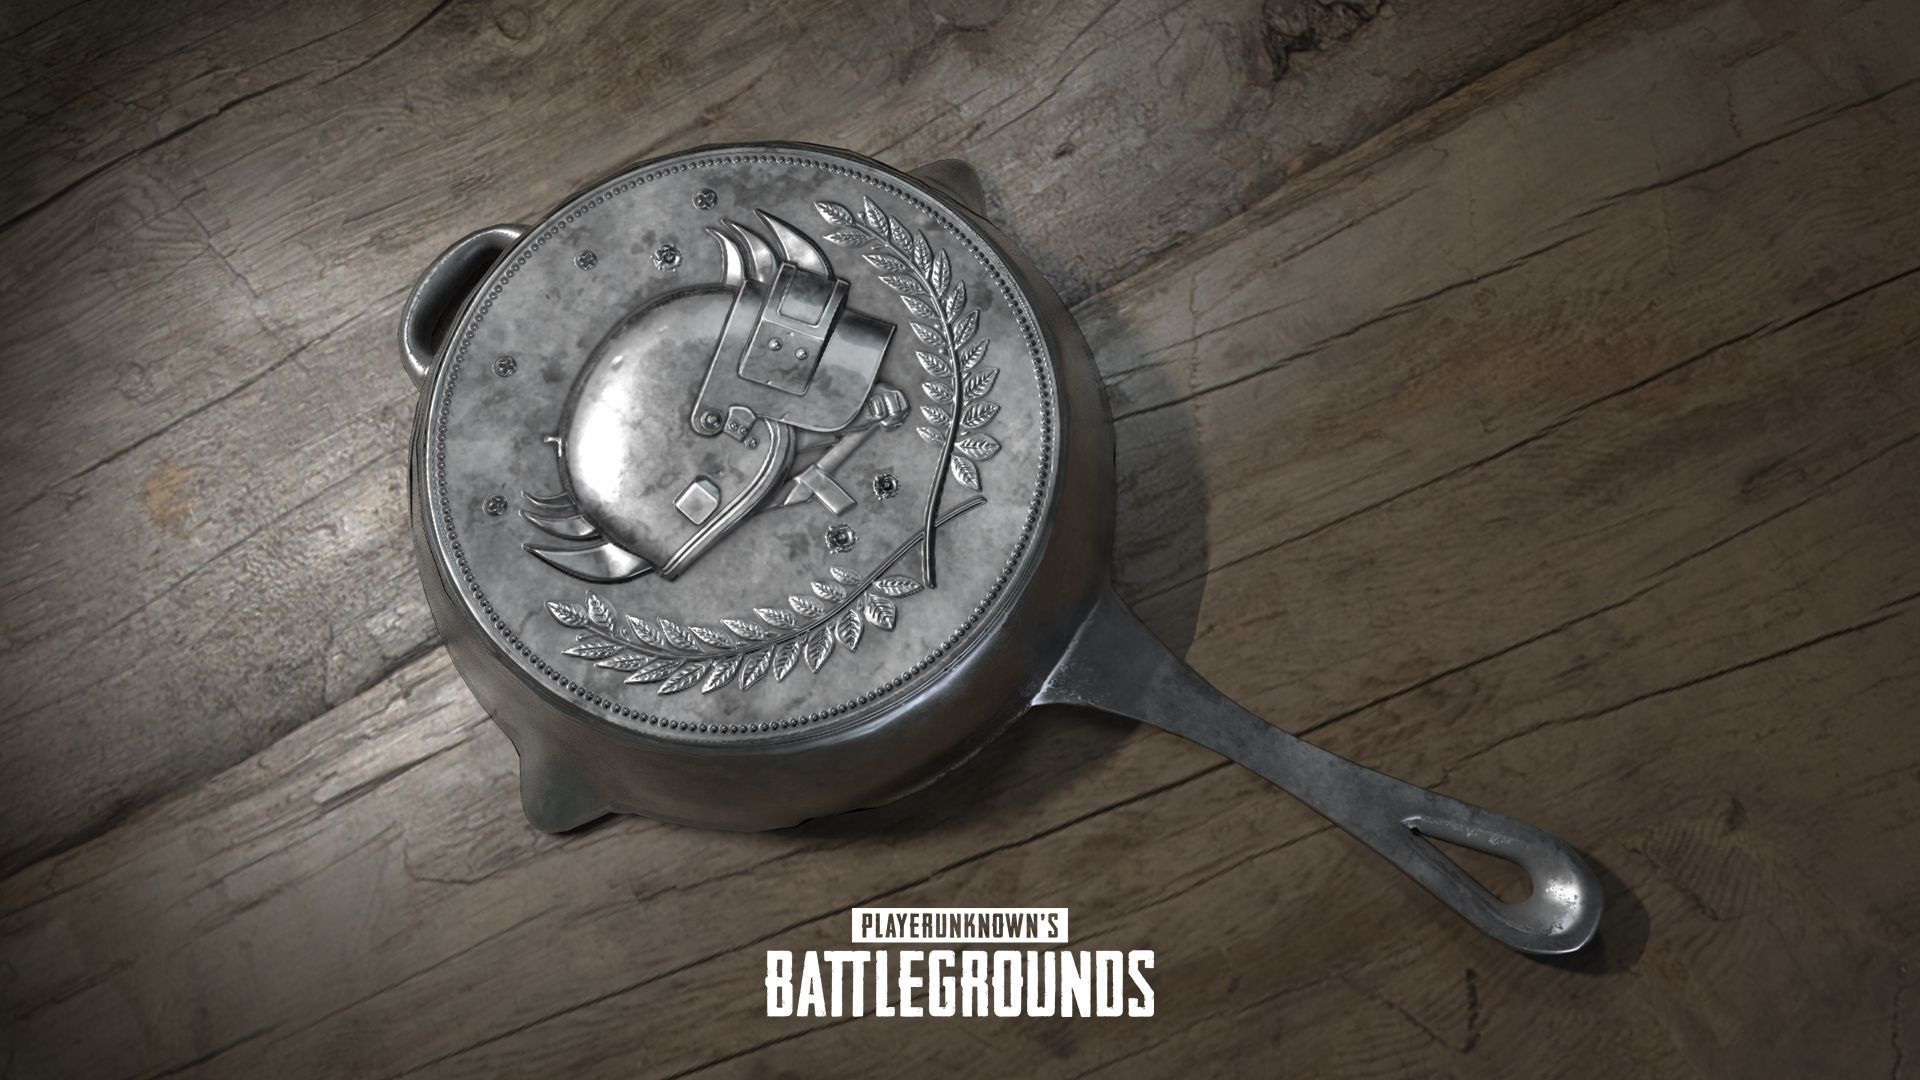 Pubg Wallpaper Hd For Iphone 6: Player Unknown's Battlegrounds (PUBG) 4K Steelpan Pubg